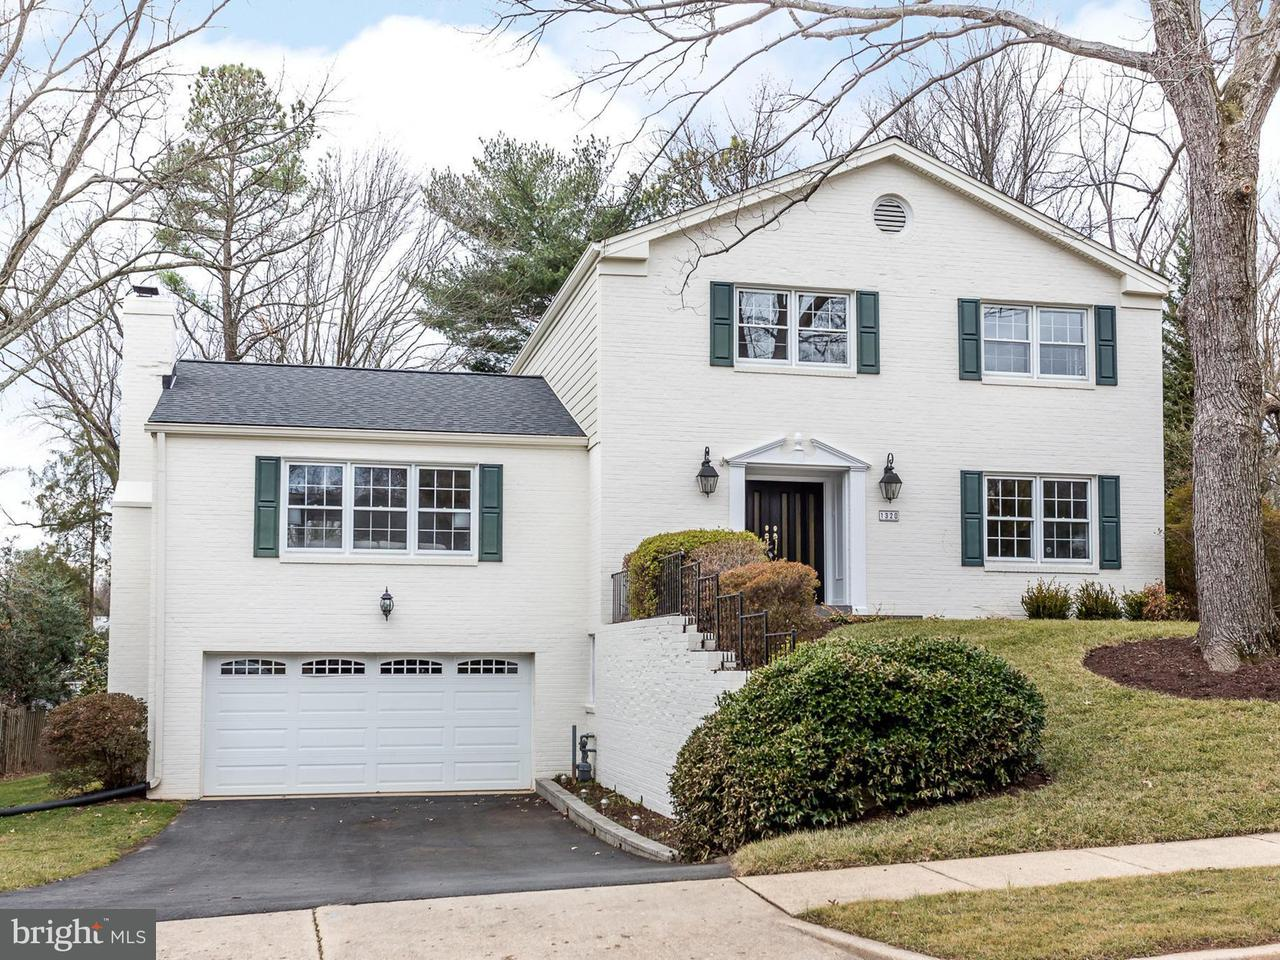 Single Family Home for Sale at 1320 Macbeth Street 1320 Macbeth Street McLean, Virginia 22102 United States